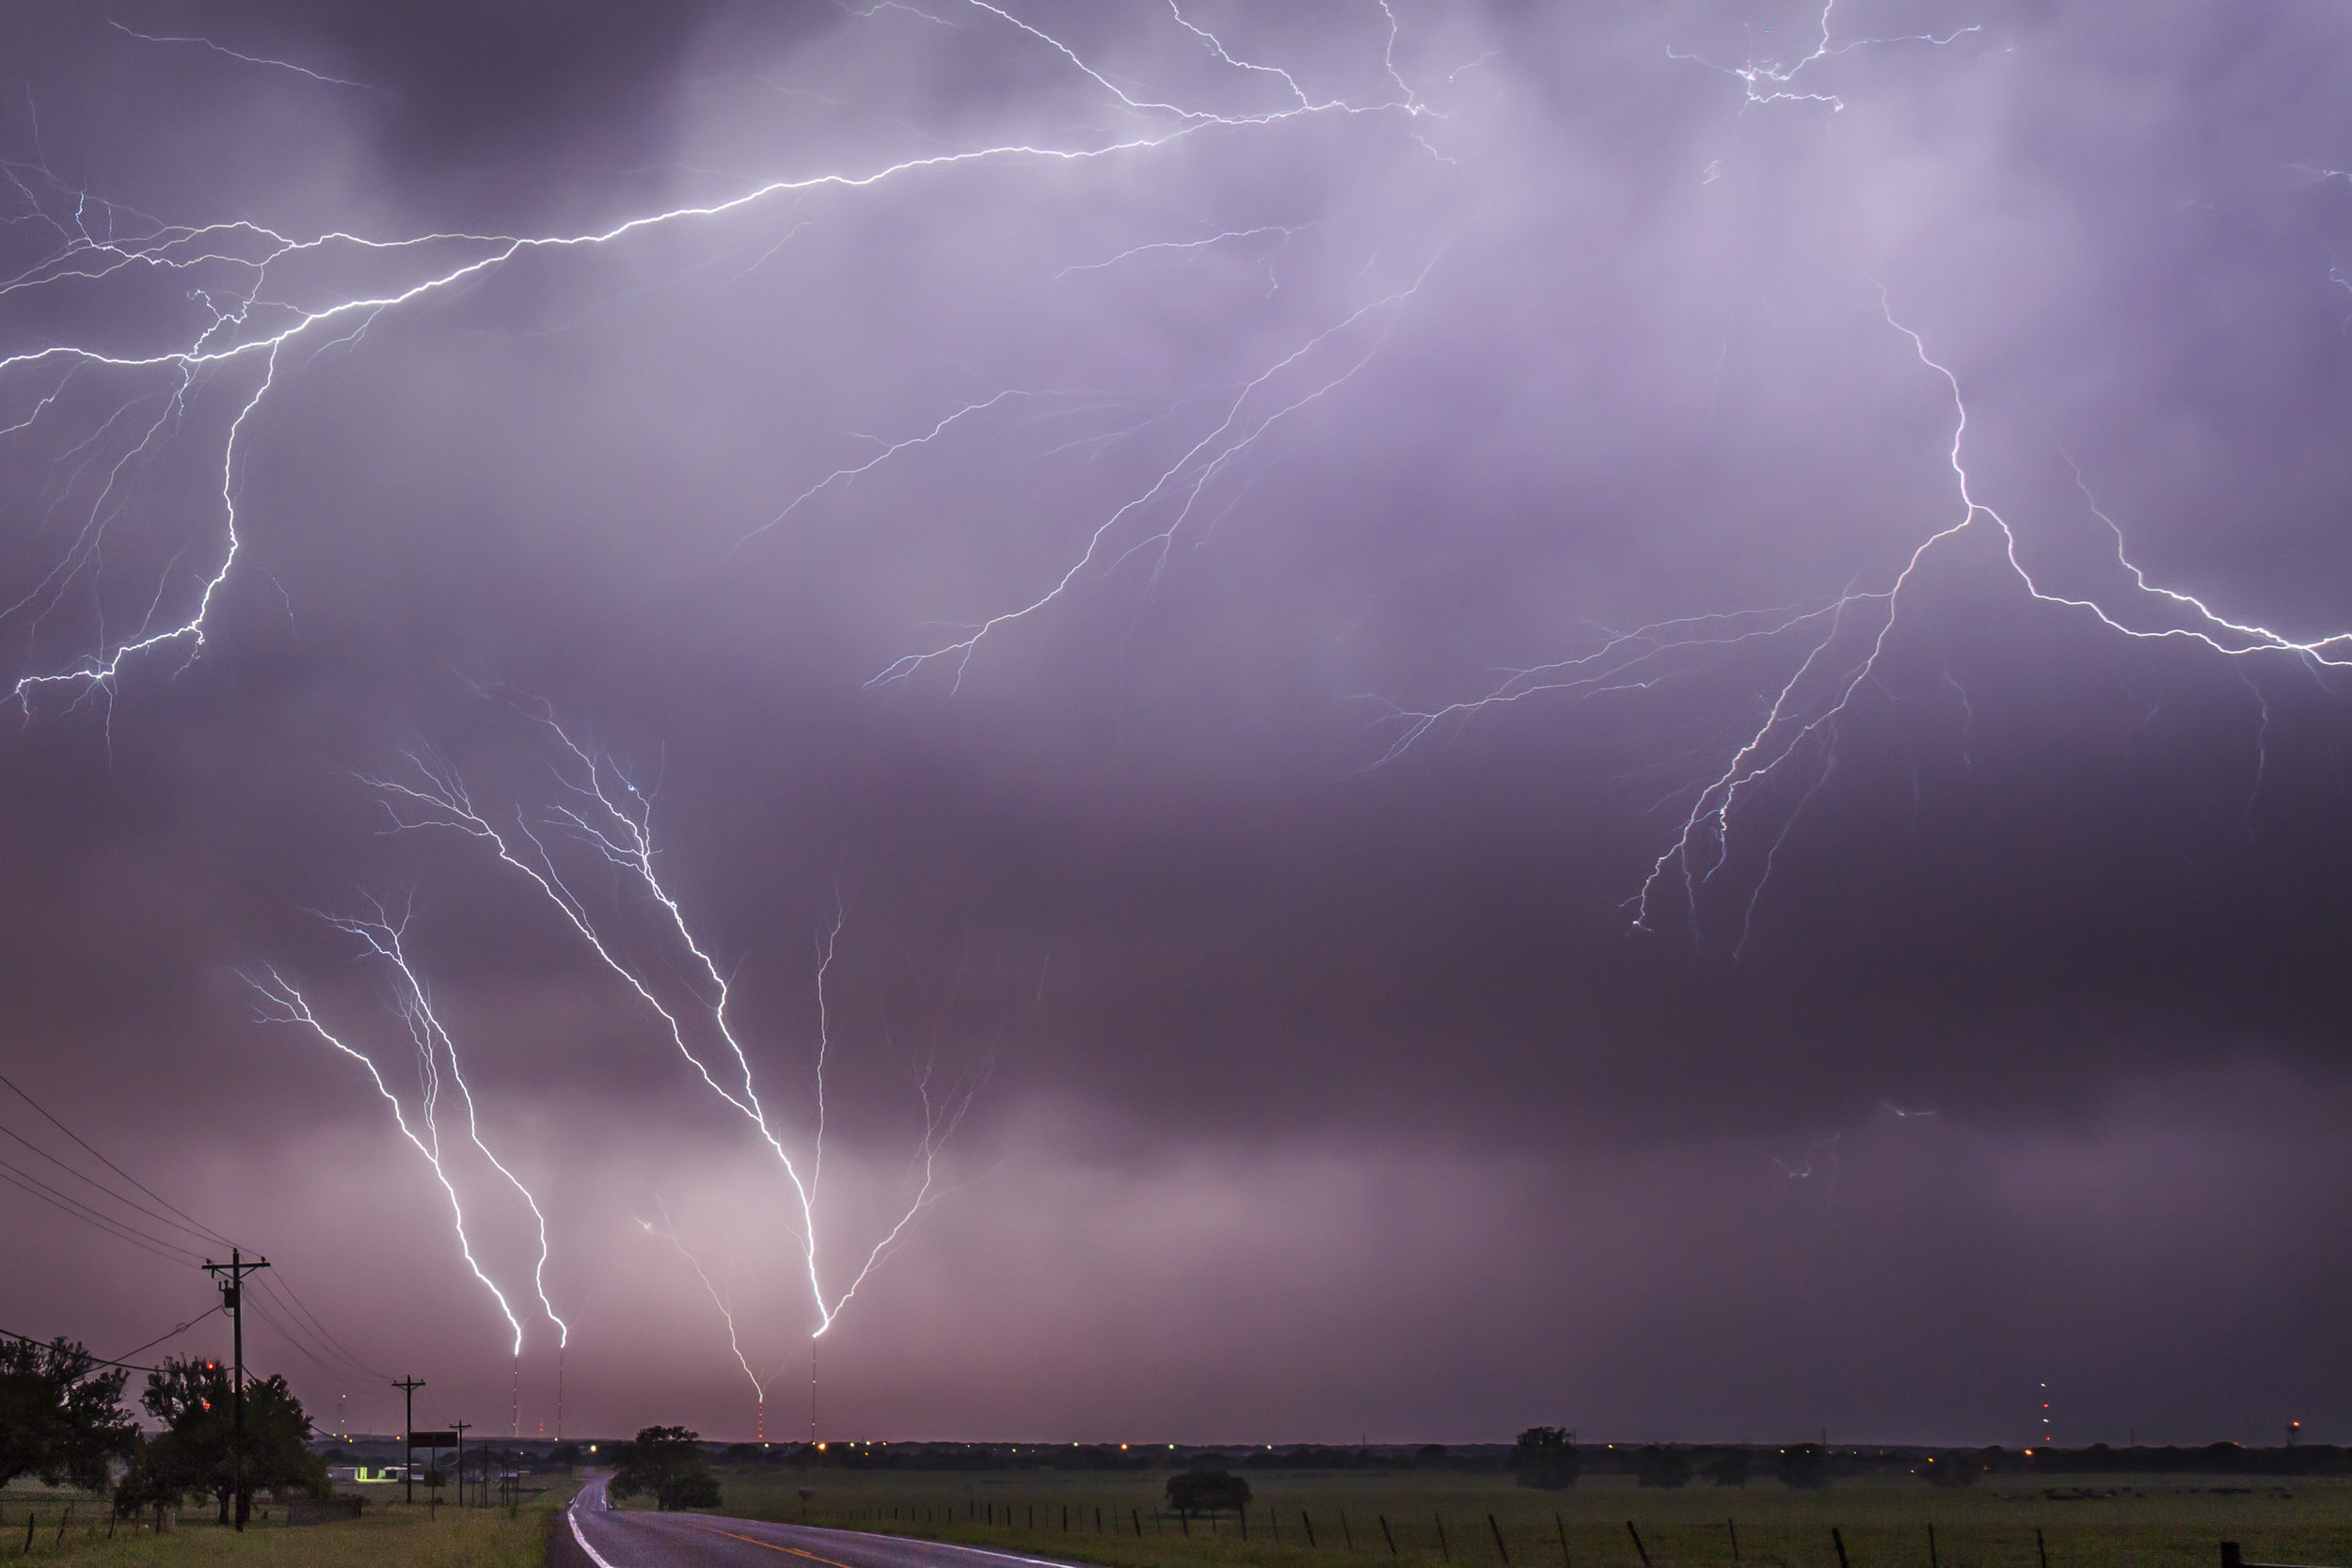 """This is a shot I tried to get for several years. After chasing a disappointing supercell in SW Oklahoma, we were treated to an incredible lightning display on the way home. As we rolled into Bruceville-Eddy, Tx very late that night,the communication towers were initiating """"upward triggered lightning"""" every few minutes."""